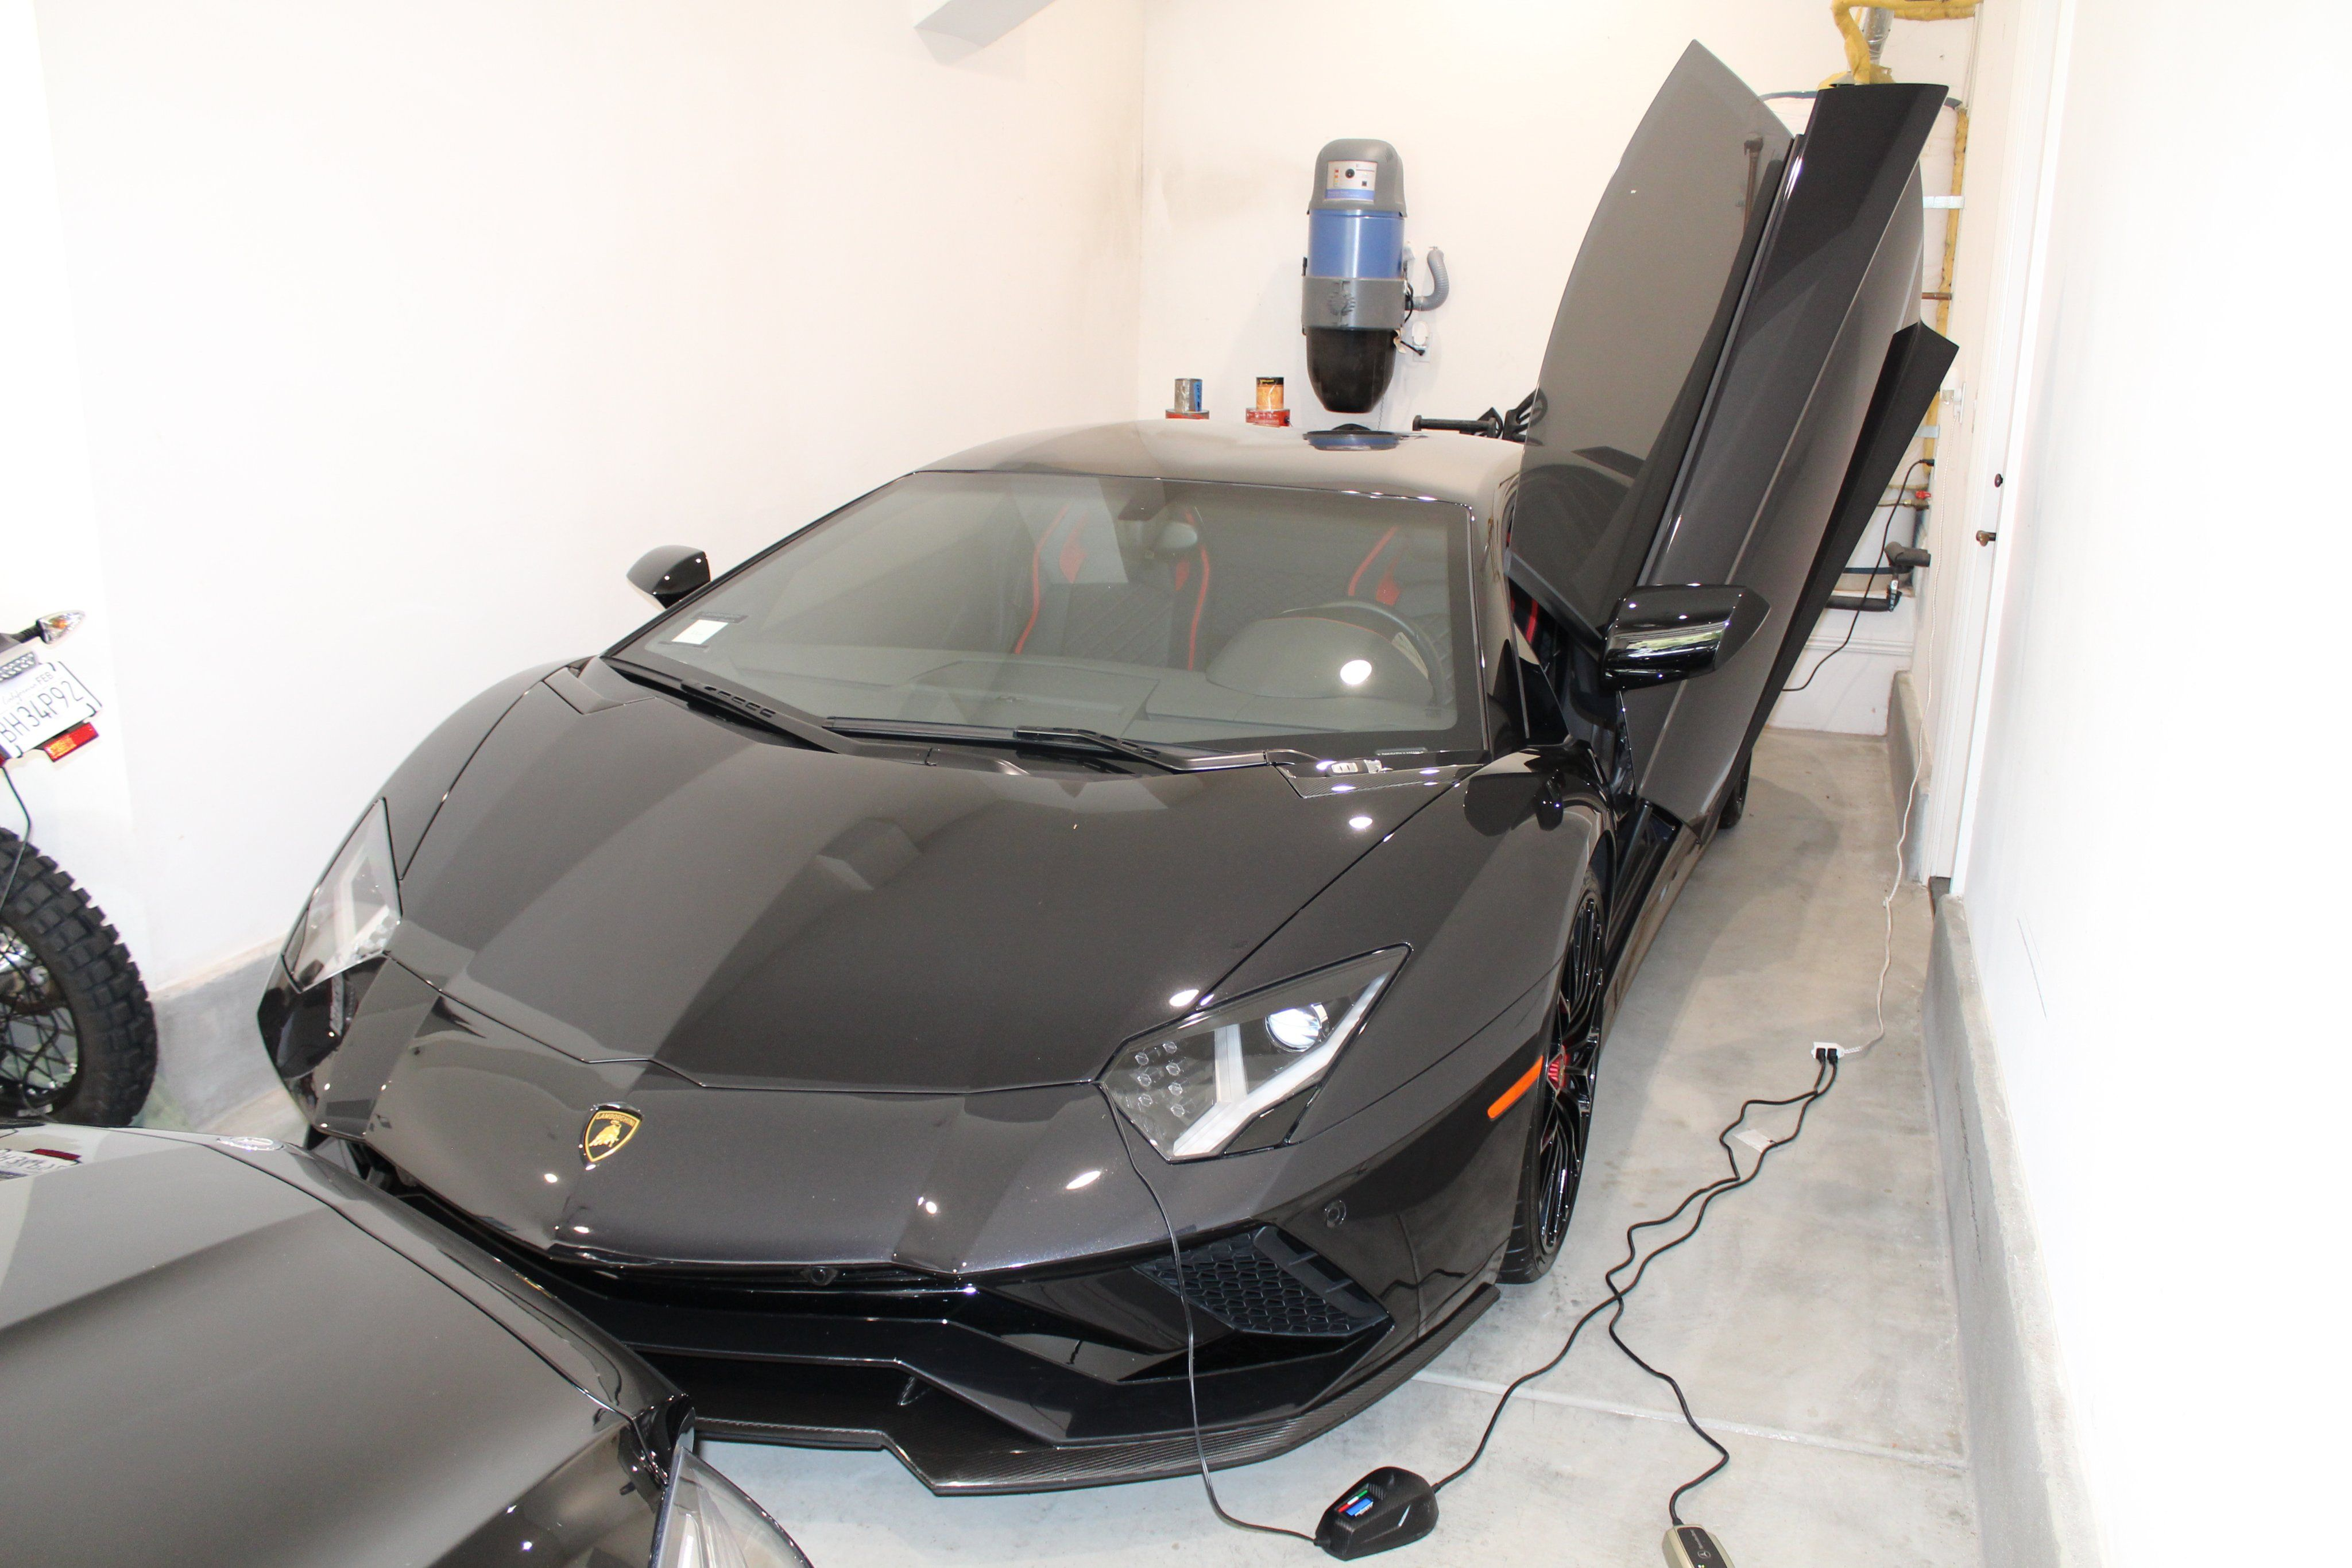 Man Allegedly Uses Pandemic Relief Funds to Buy a Lamborghini, Ferrari, and Bentley